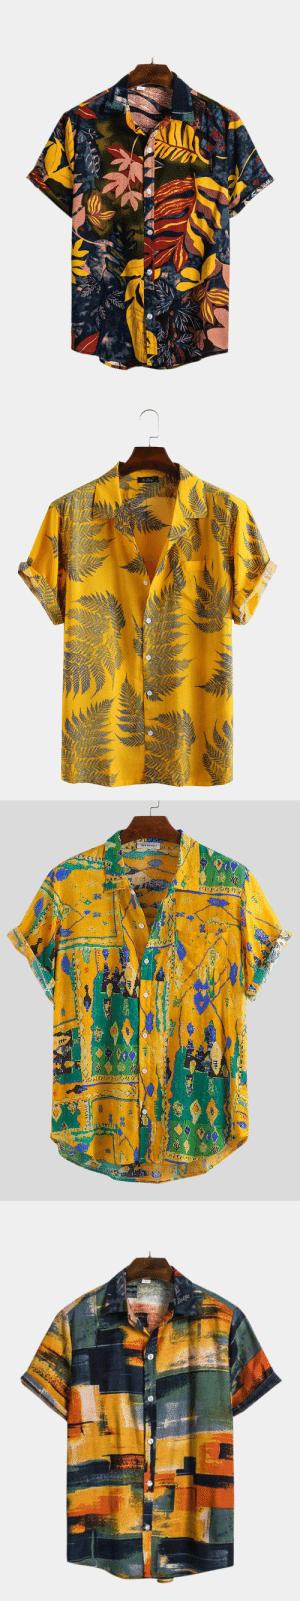 youngballoon:  Men's Hawaiian Leaf Printed Chest Pocket Short Sleeve Shirts Check out HERE20% OFF Coupon Code : tumblr-0405: youngballoon:  Men's Hawaiian Leaf Printed Chest Pocket Short Sleeve Shirts Check out HERE20% OFF Coupon Code : tumblr-0405